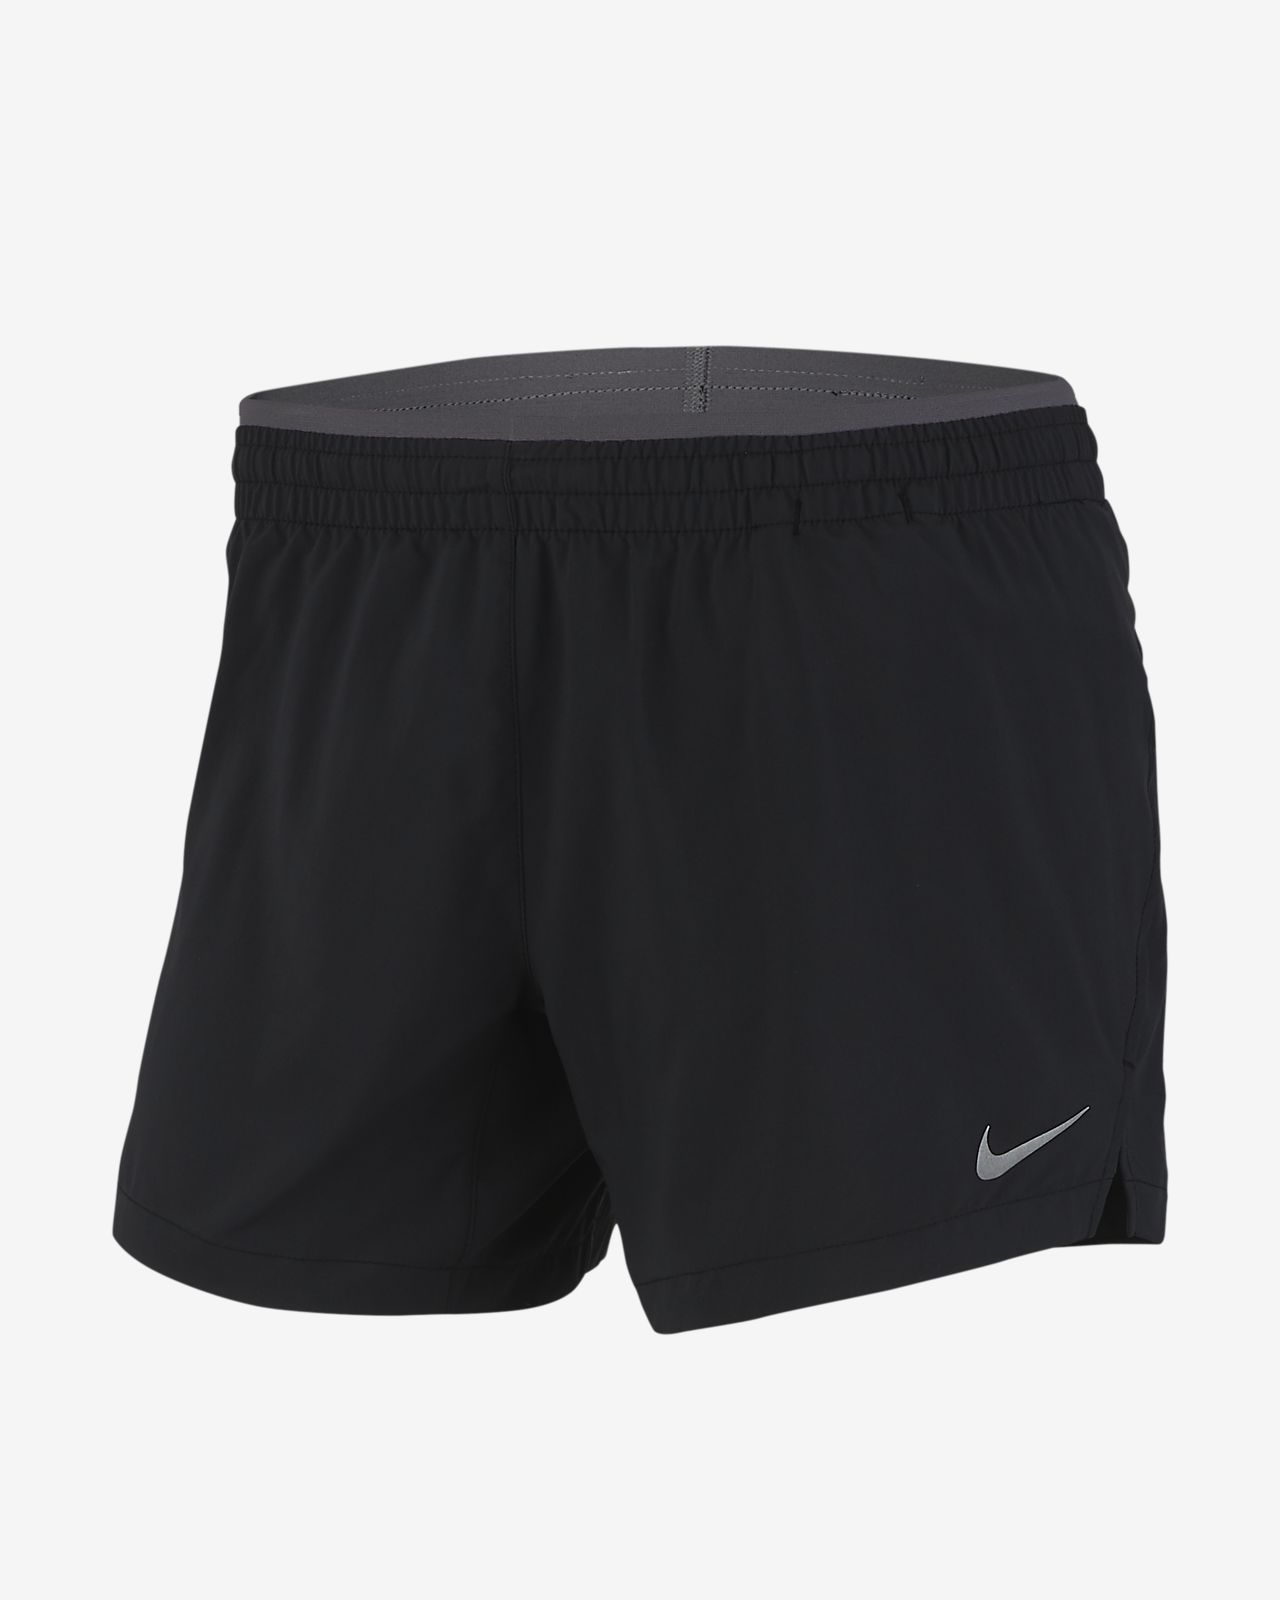 "Nike Elevate Women's 5"" Running Shorts"